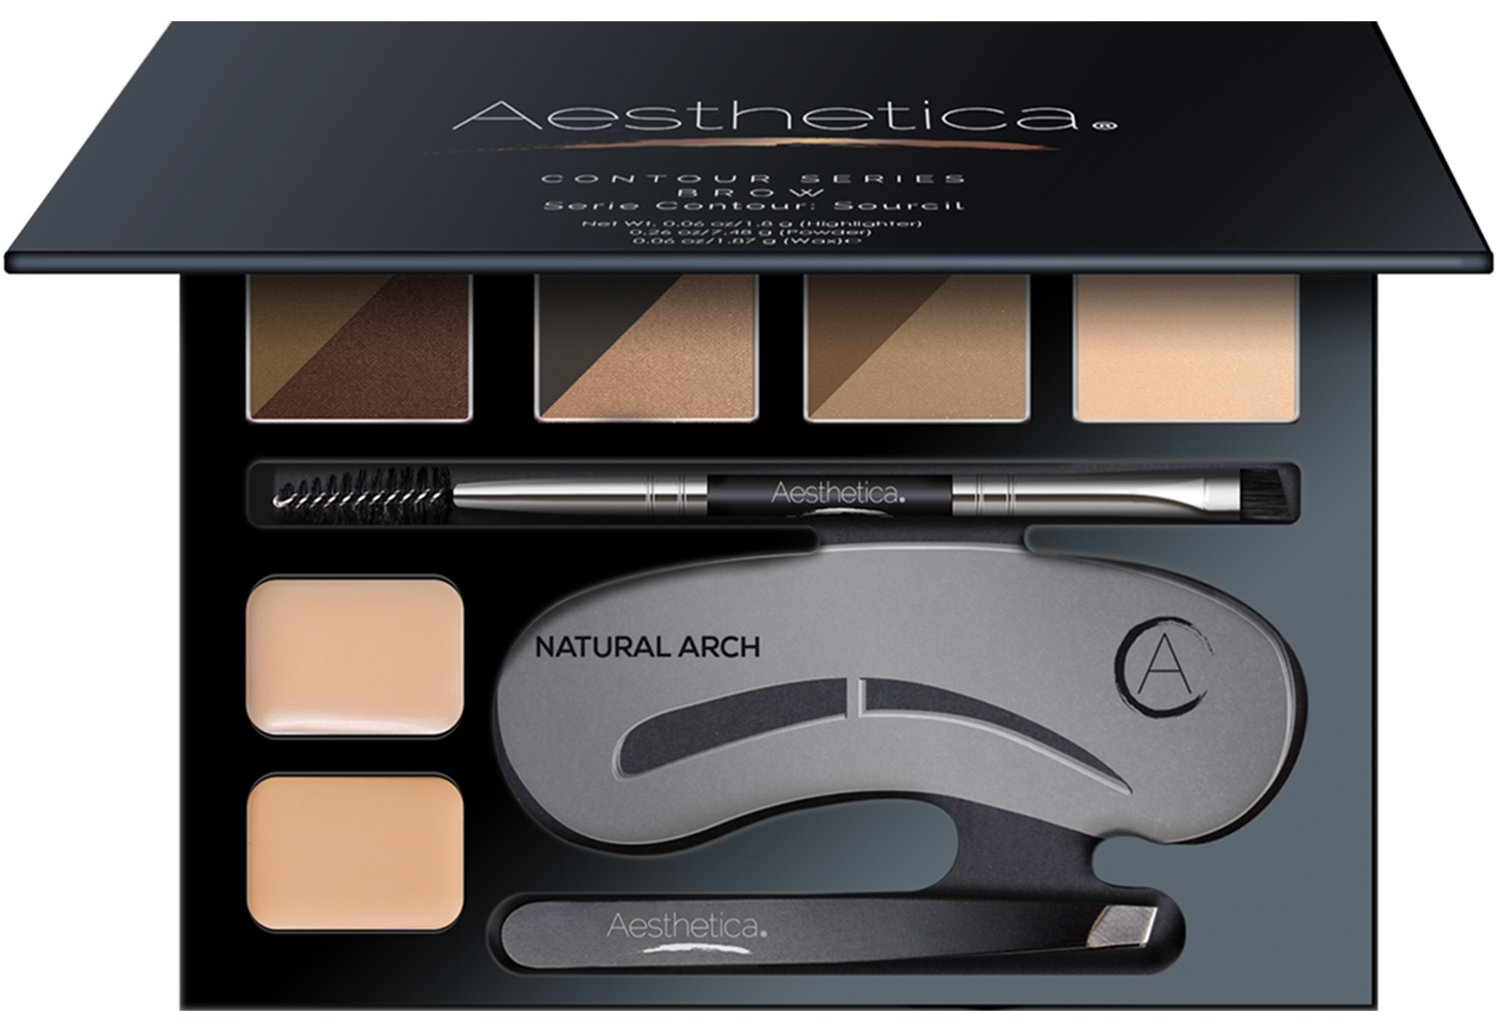 Aesthetica Brow Contour Kit - 16-Piece Eyebrow Makeup Palette - 6 Eyebrow Powders, 5 Eyebrow Stencils, Spoolie/Brush Duo, Tweezers, Brow Wax, Highlighter, Concealer & Instructions